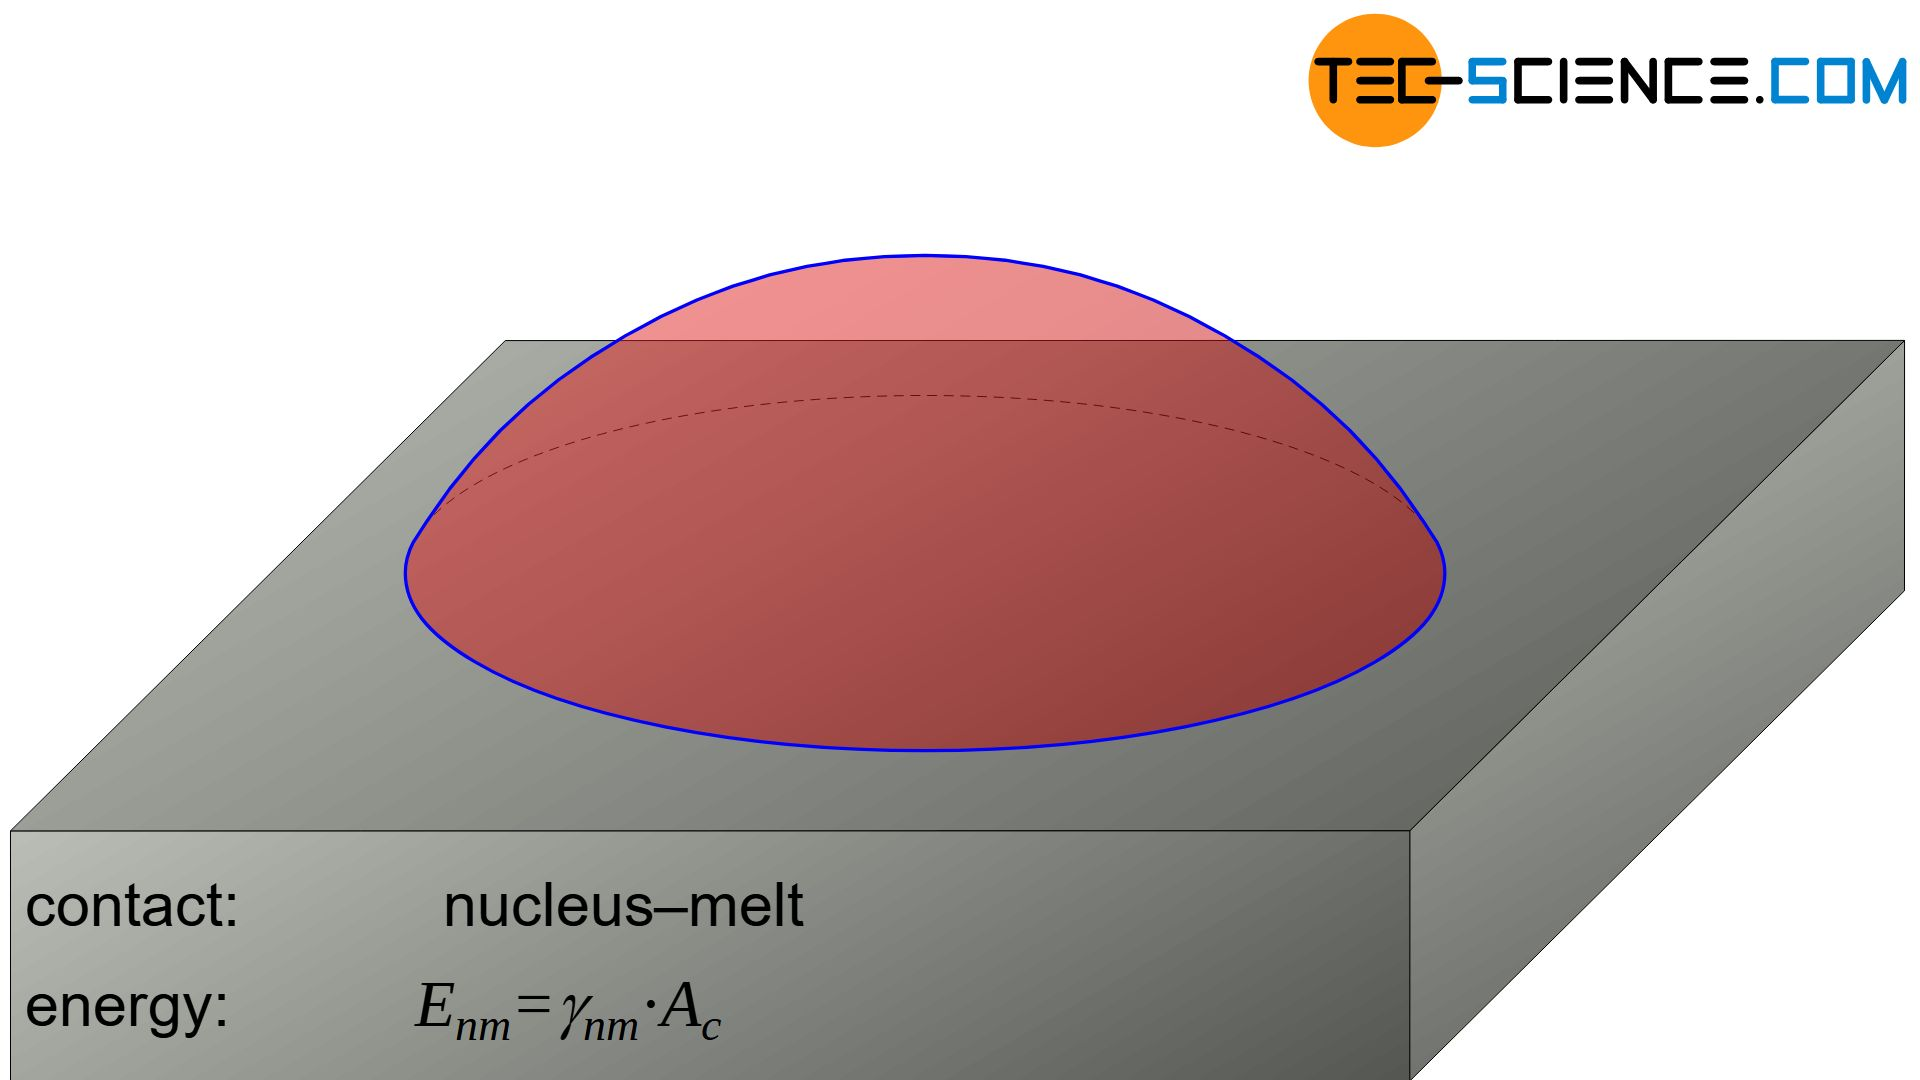 Surface energy between nucleus and melt